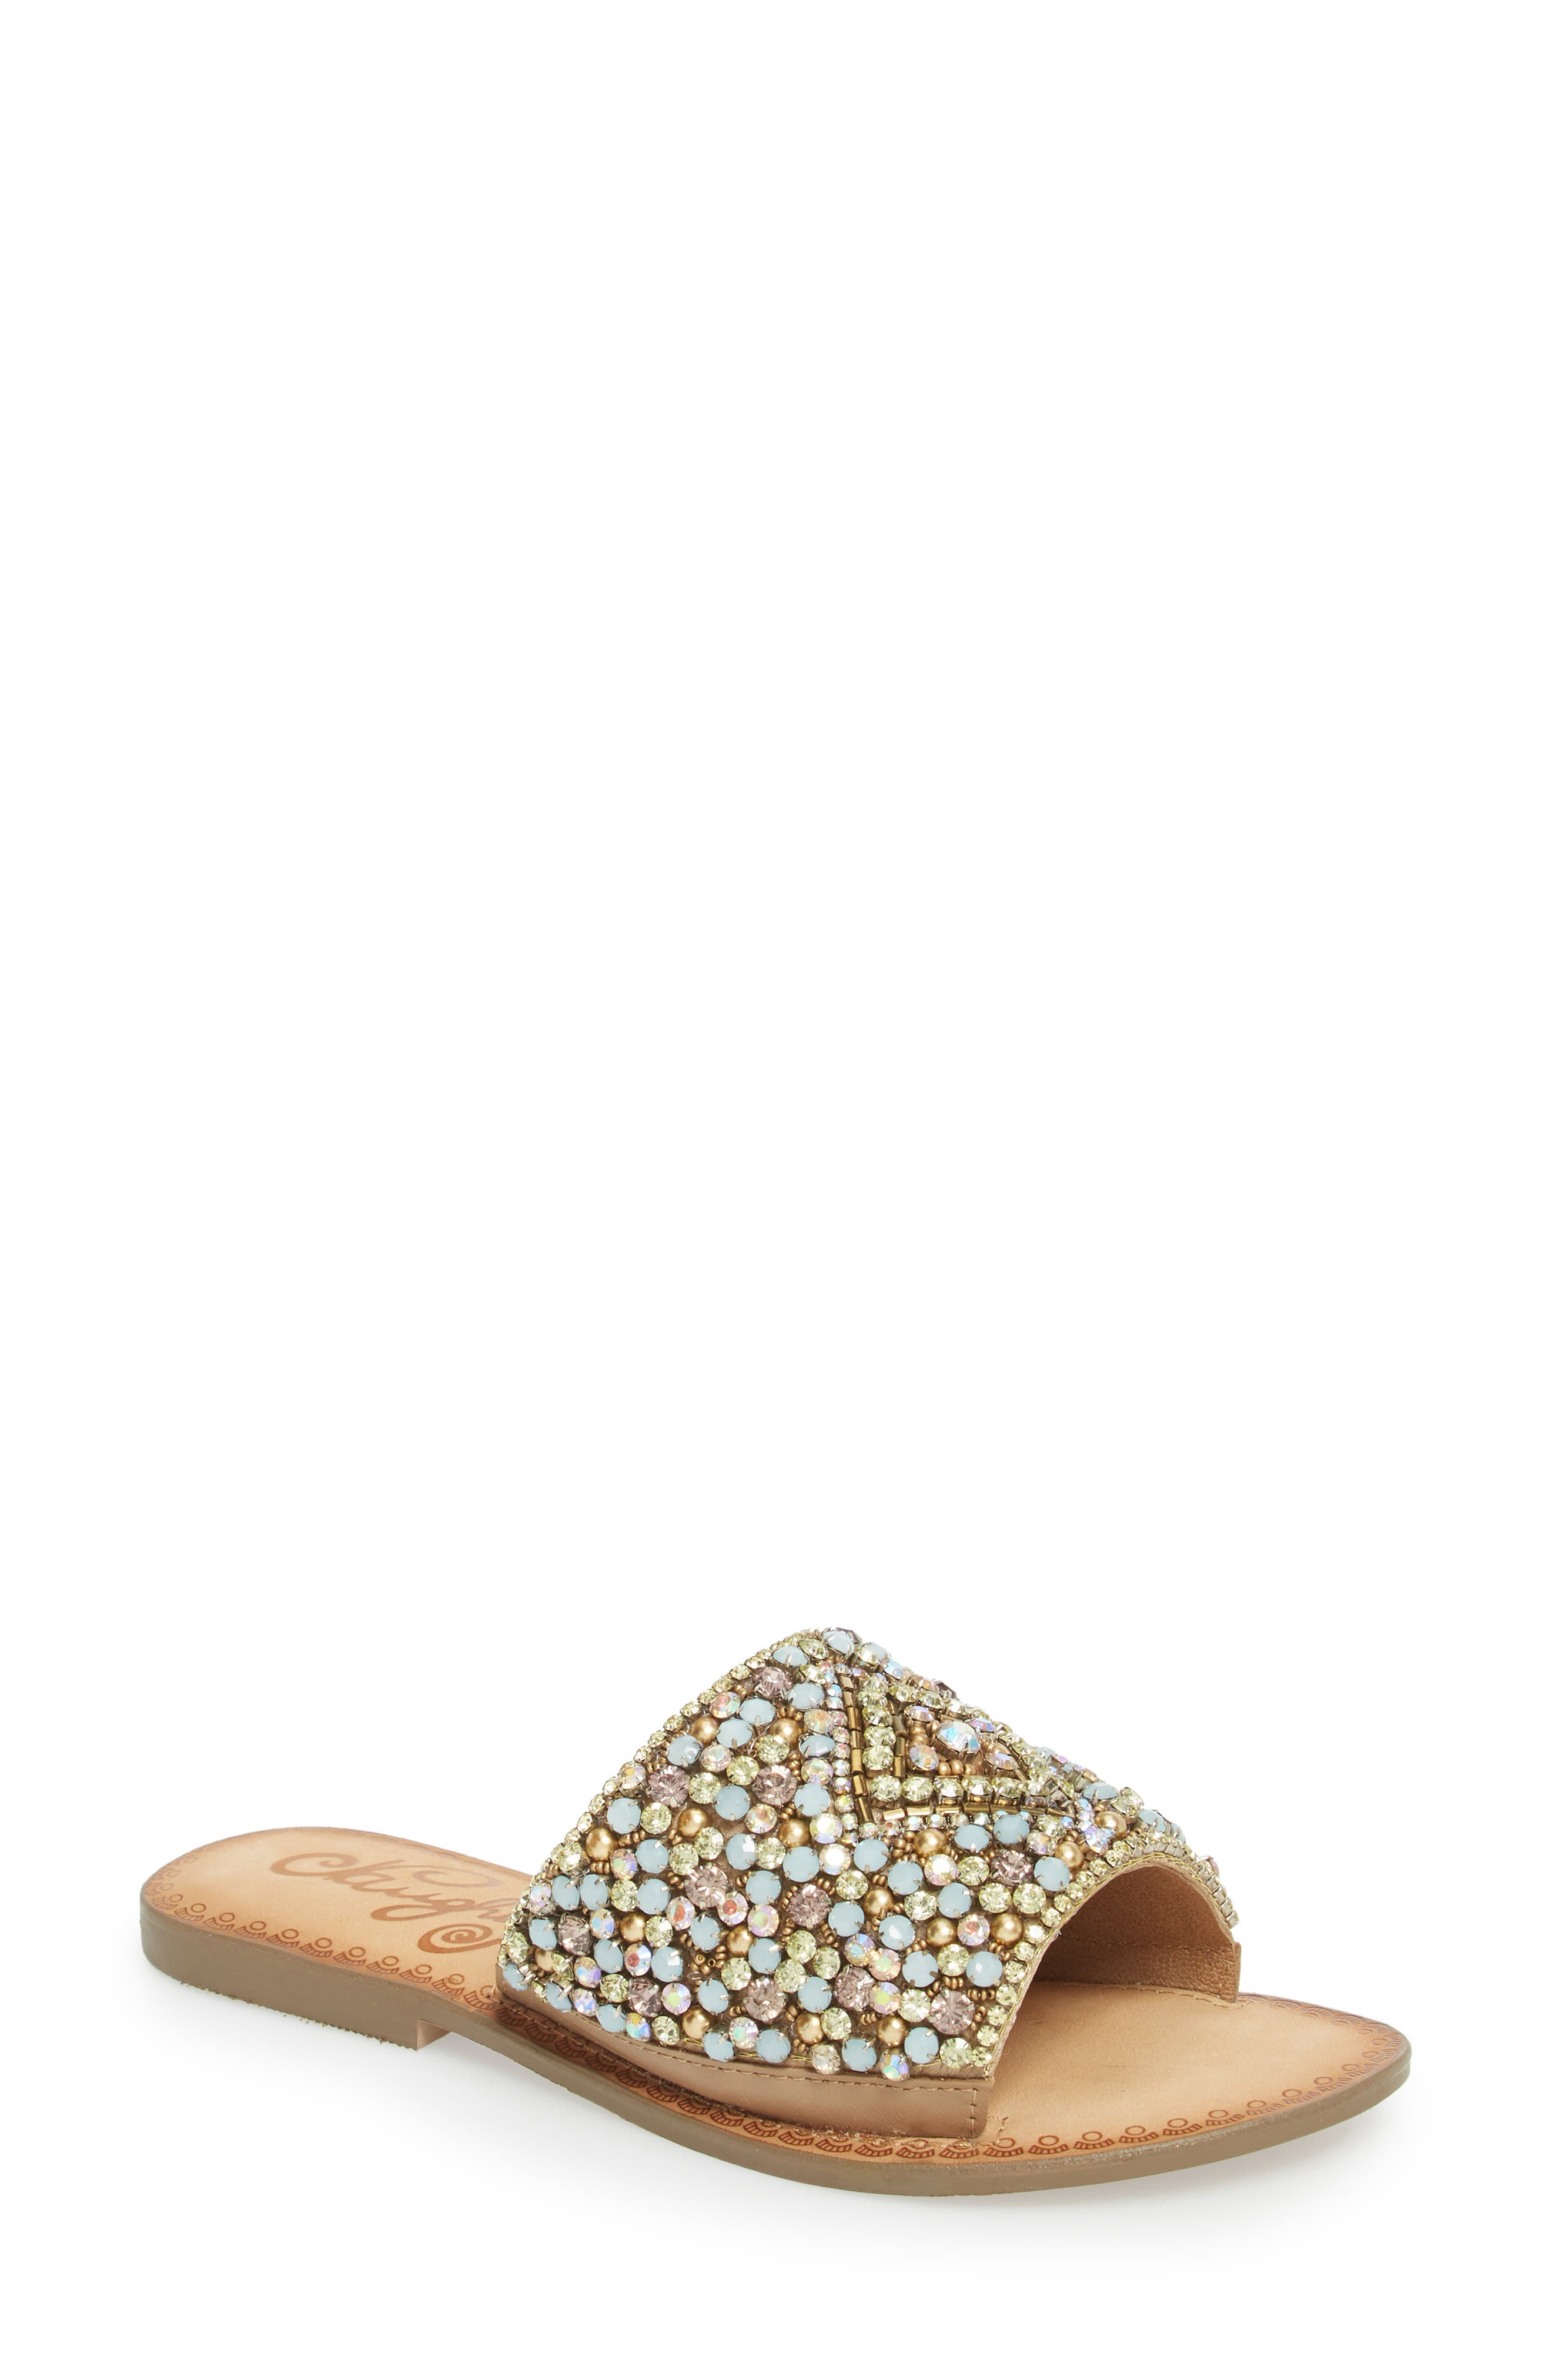 Susanna Embellished Slide Sandal,                             Main thumbnail 1, color,                             040